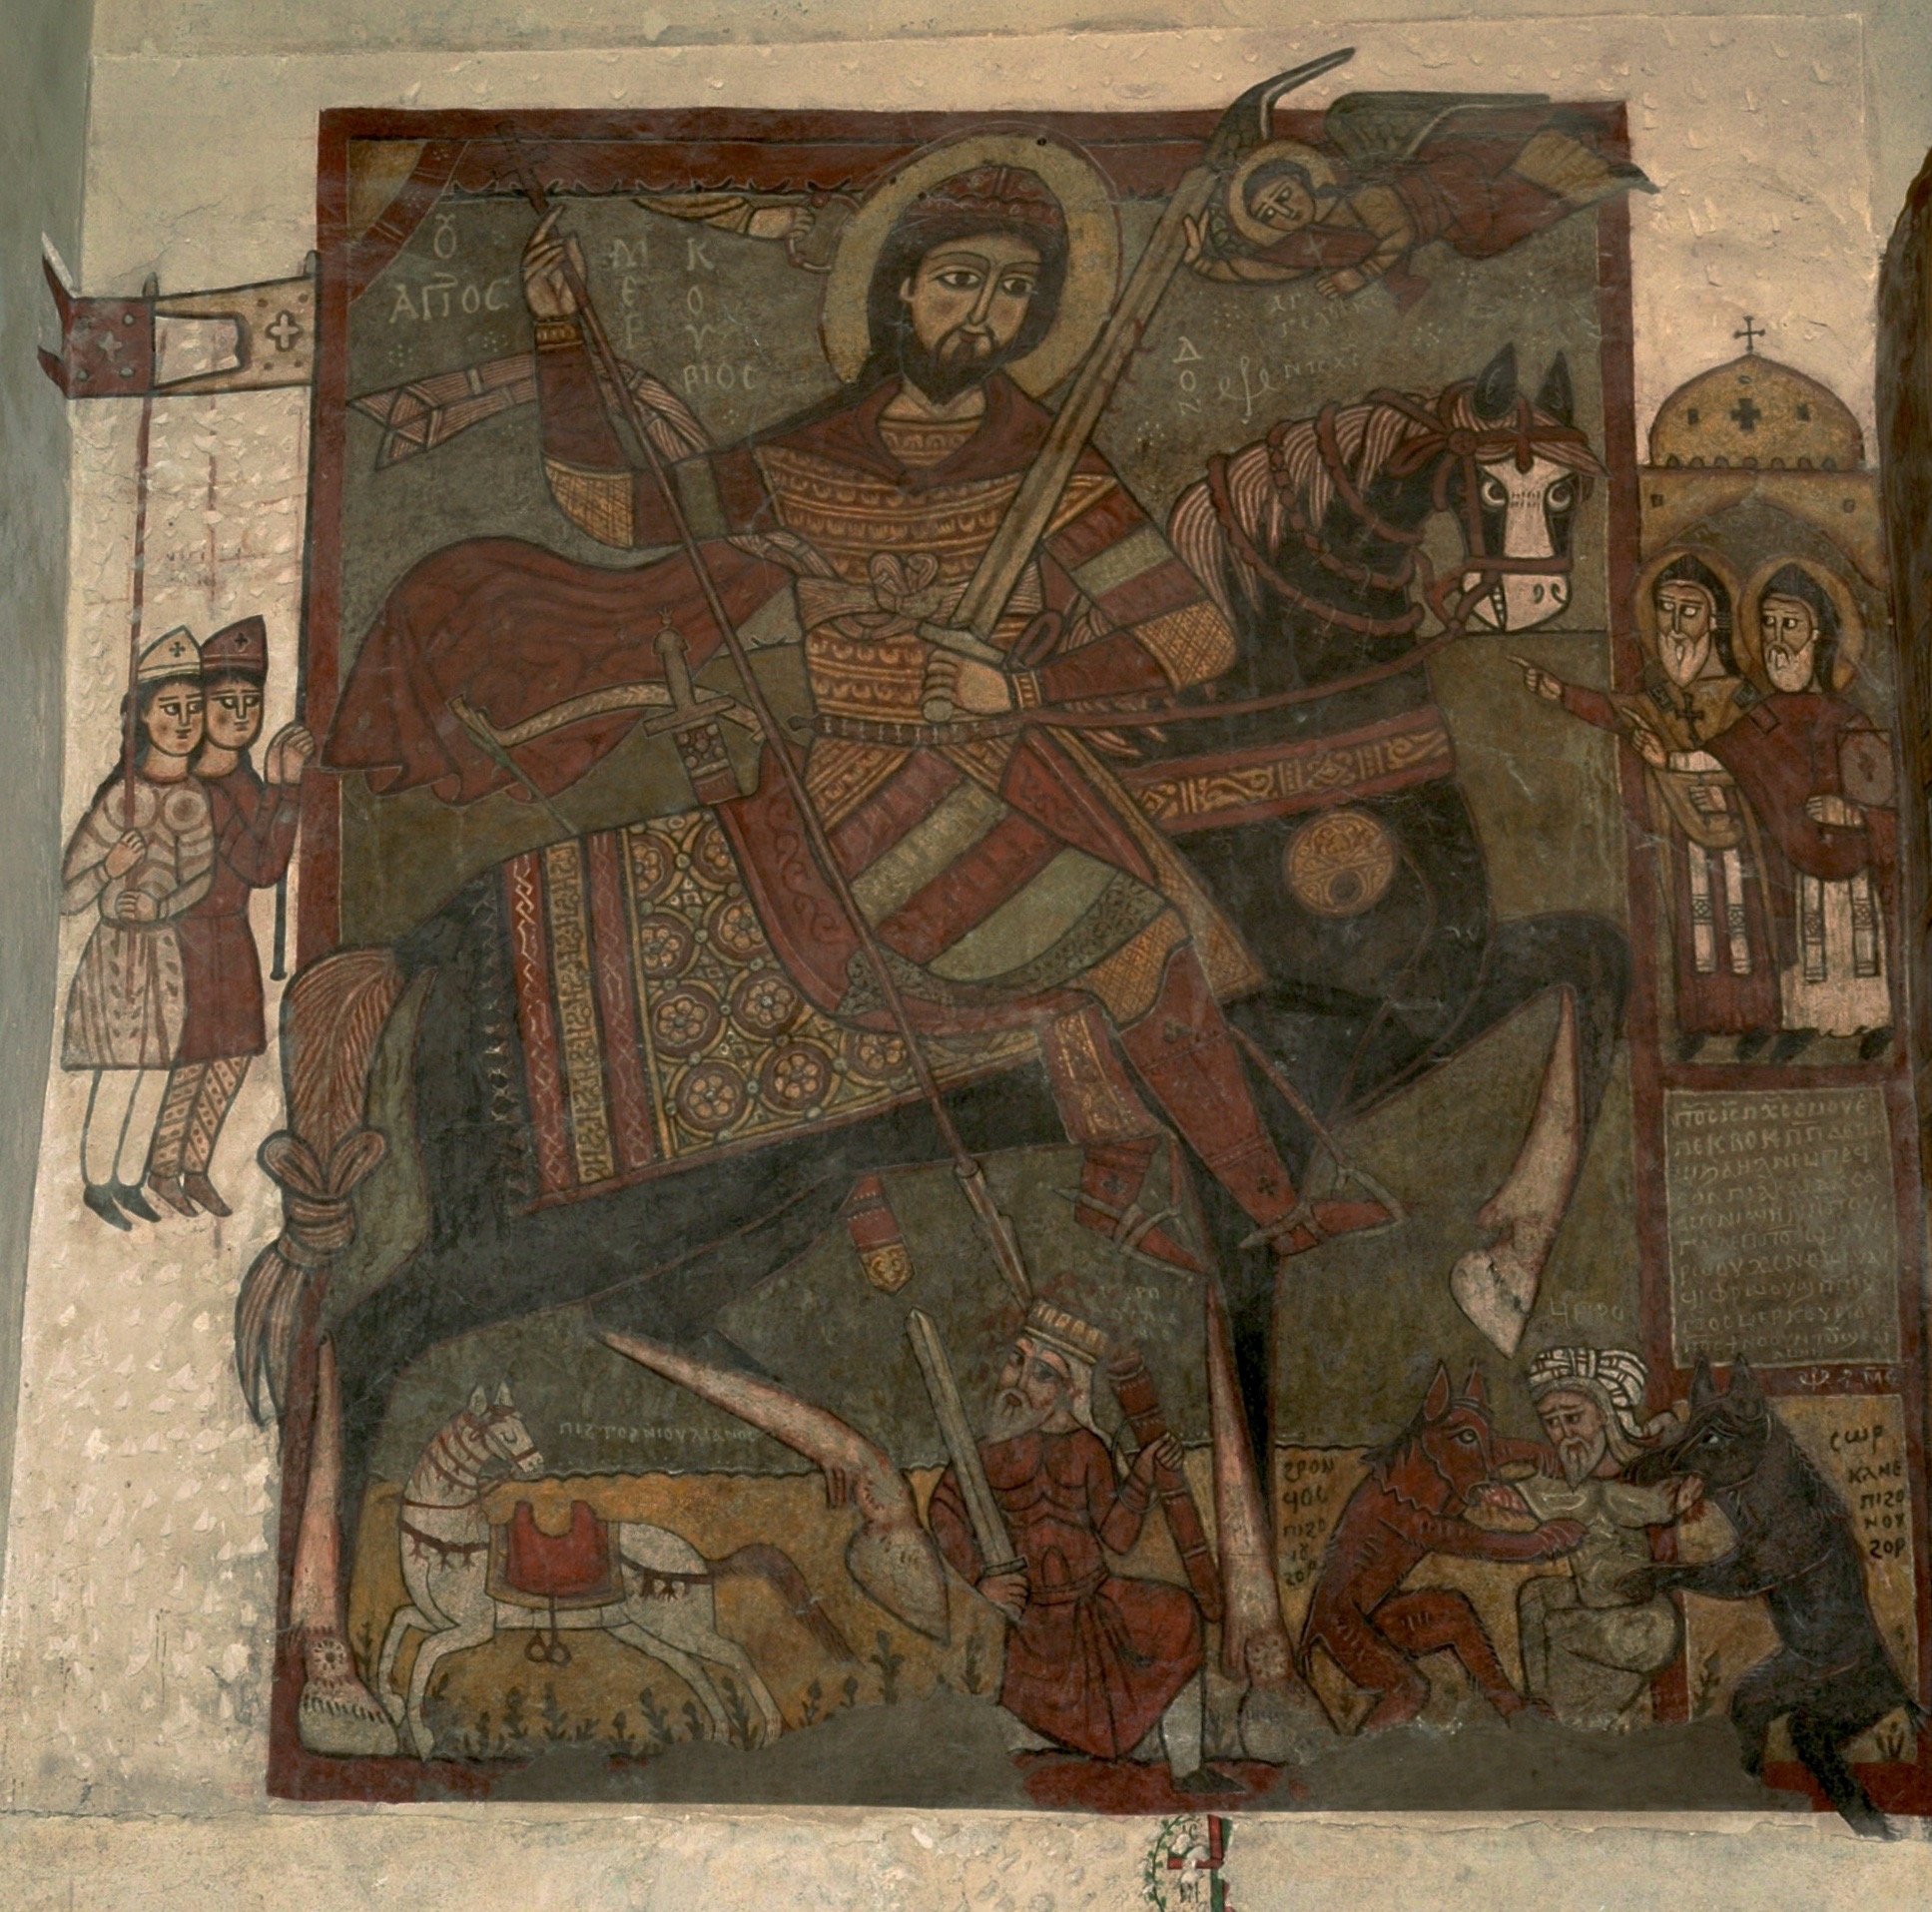 St. Mecurios slaying Julian the Apostate, wall painting, 13th century, main church, Monastery of St. Antony at the Red Sea, Egypt  (© Heather Badamo)